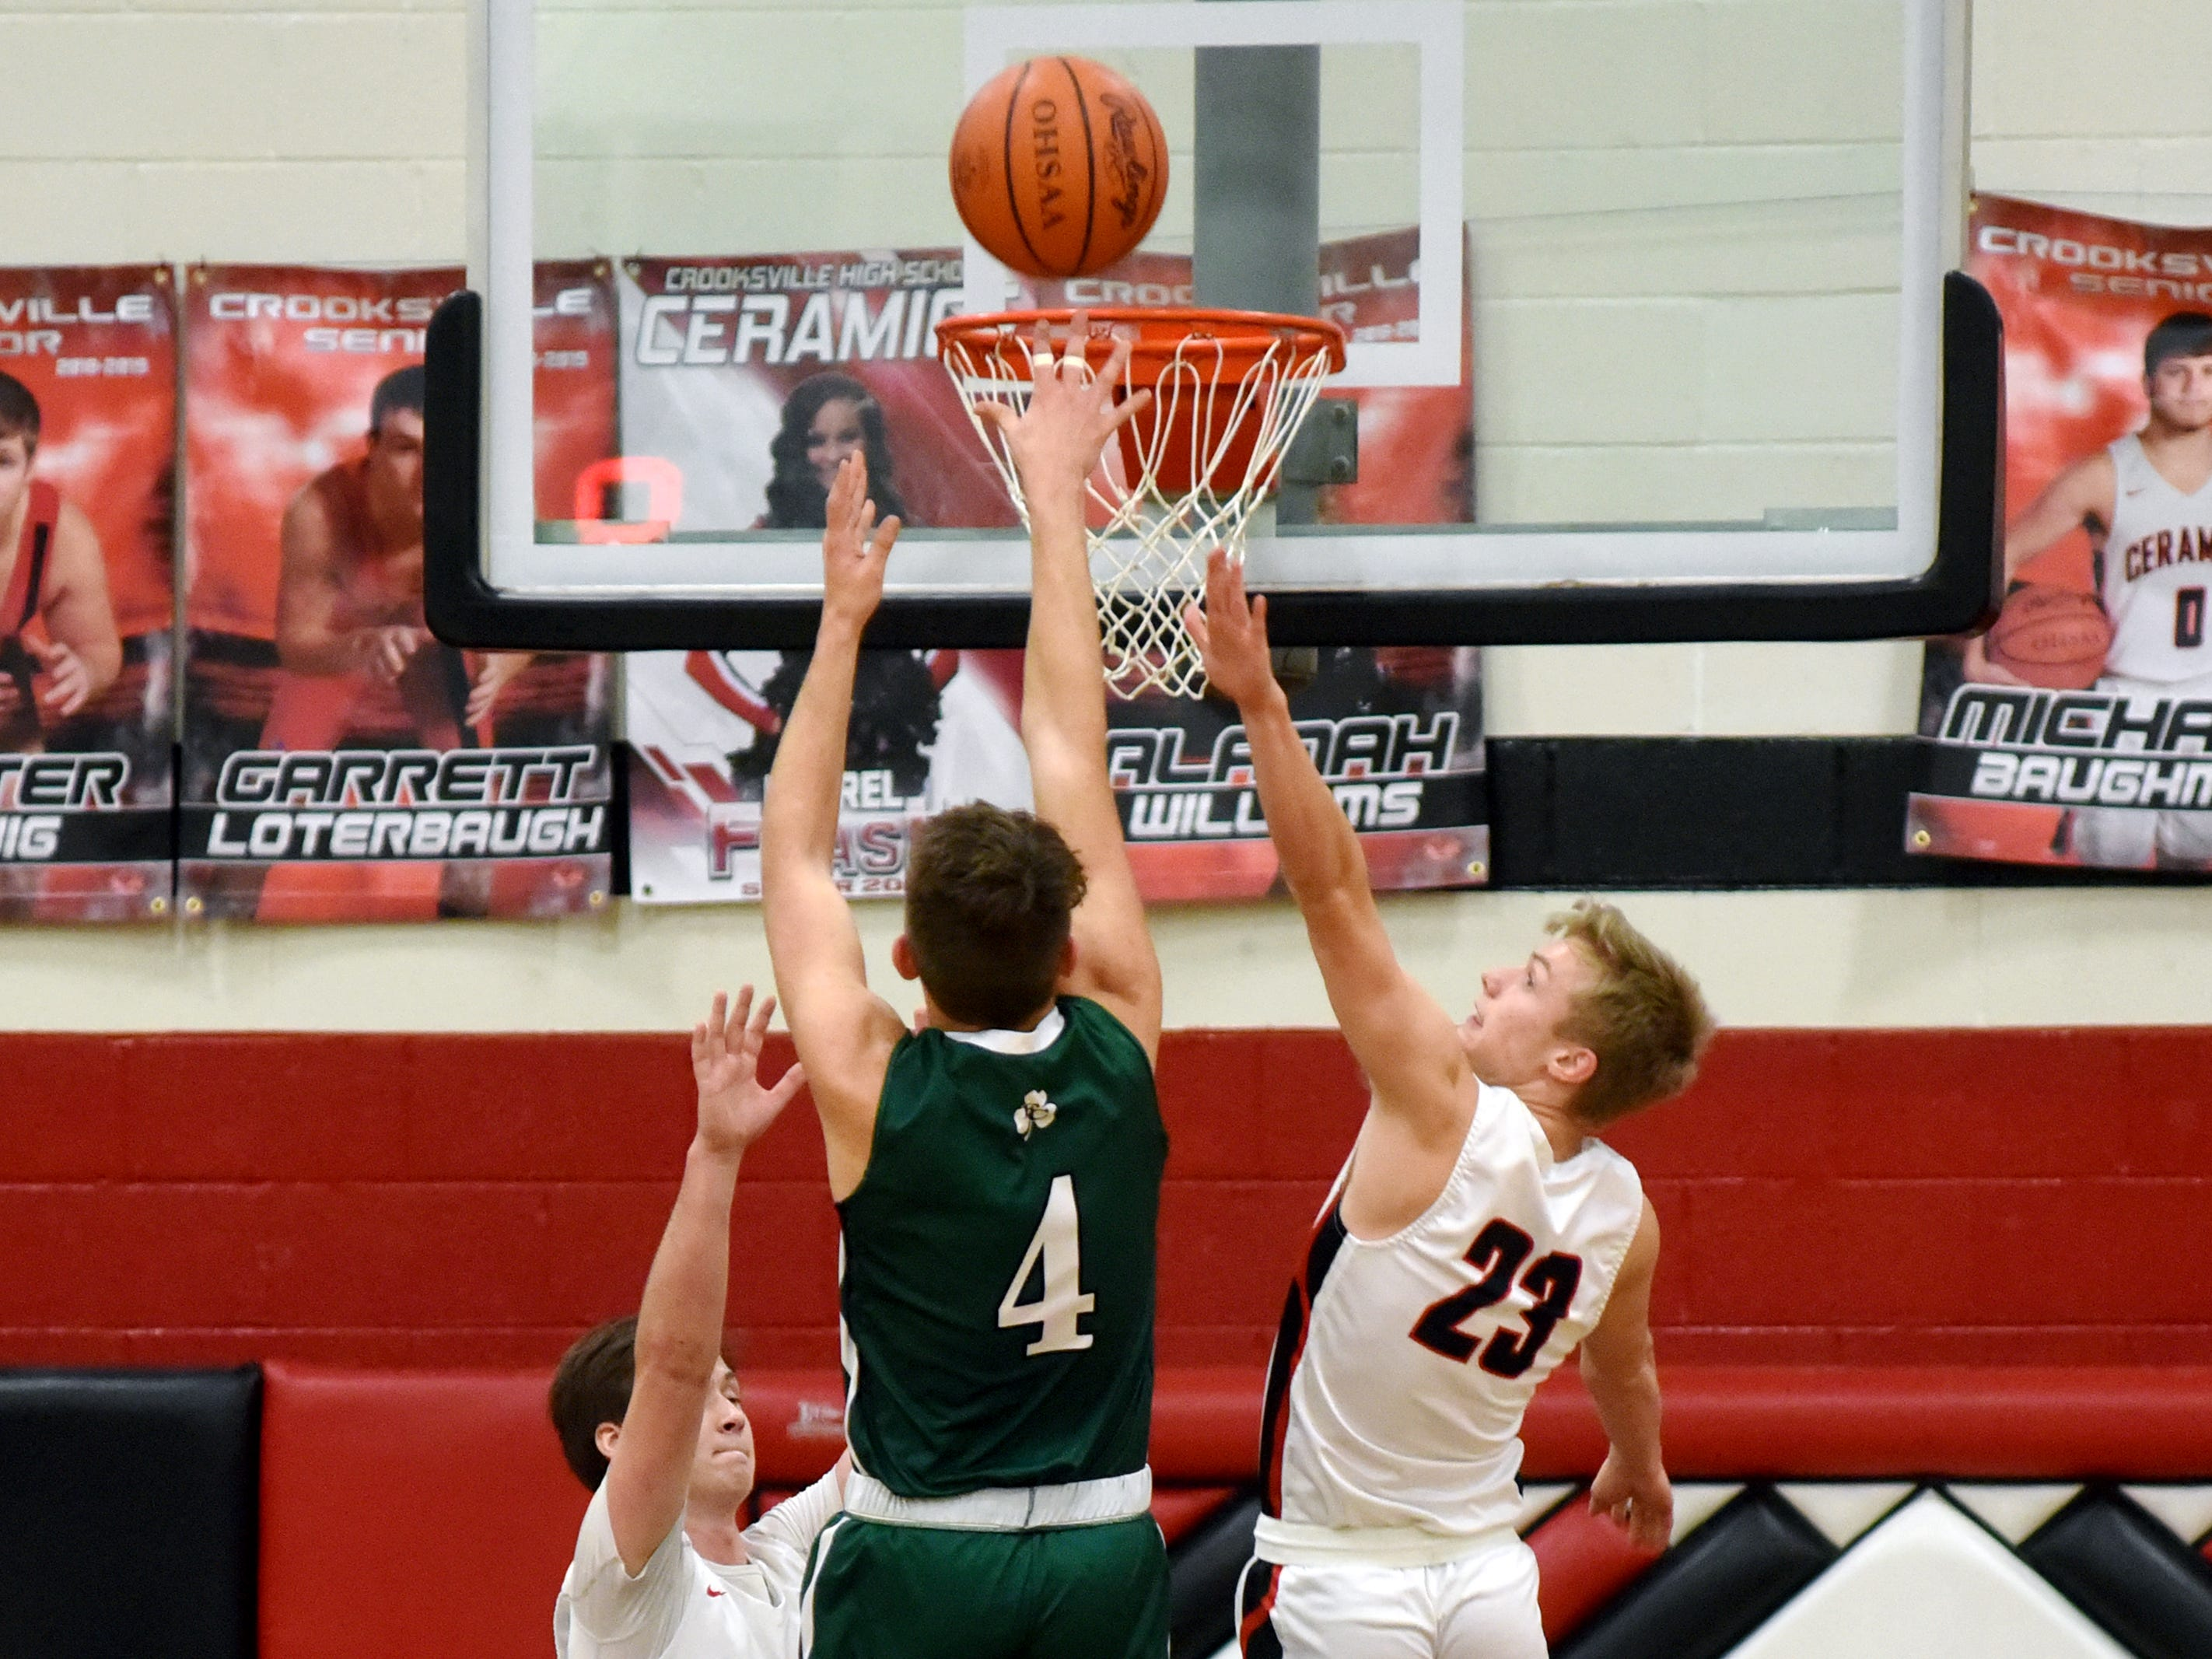 Fisher Catholic's Daniel Turner shoots a jumper over Crooksville's Caden Sparks on Monday night in McLuney.